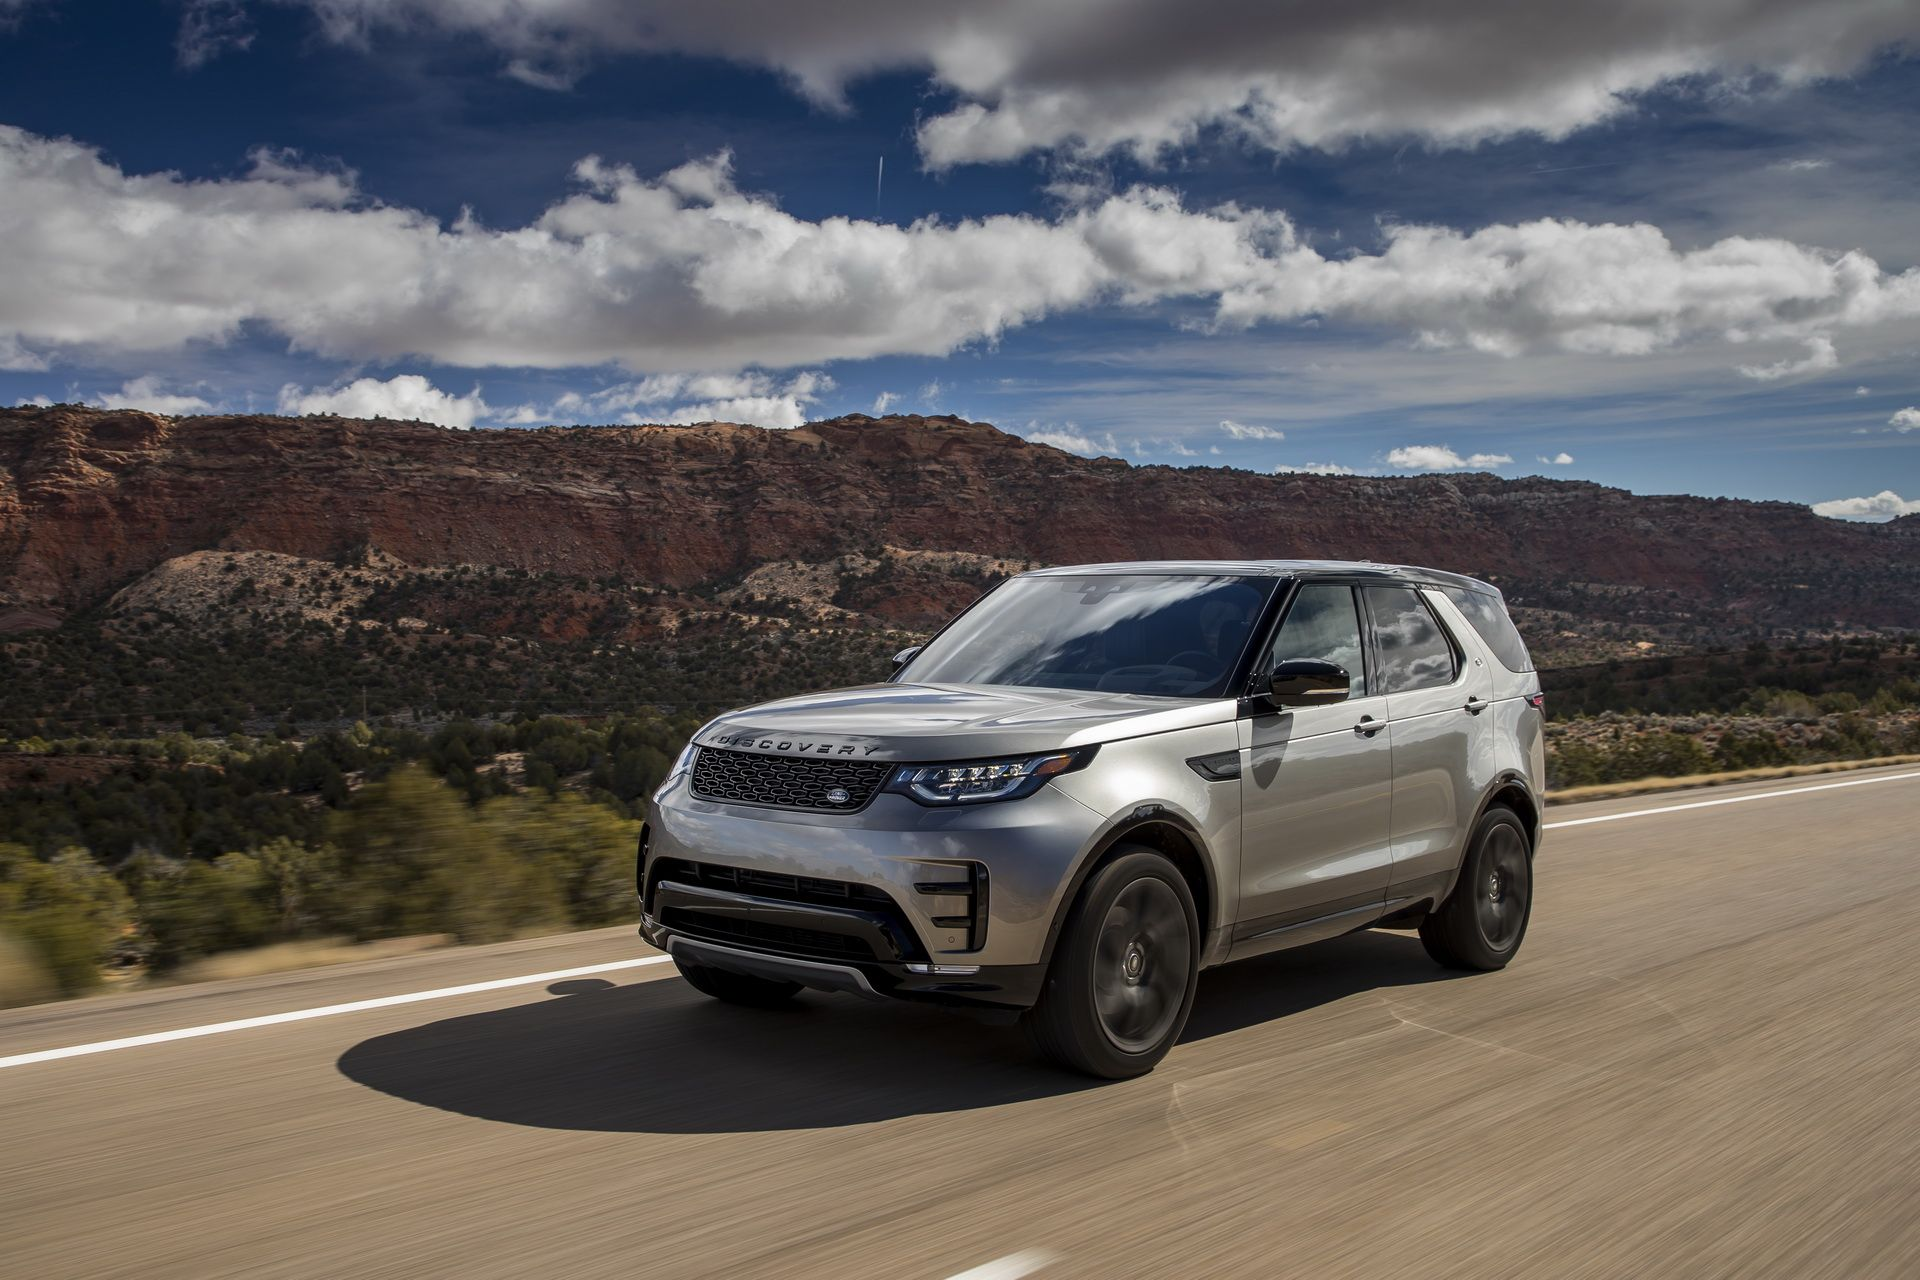 Land Rover Discovery >> Land Rover Discovery Punya Mesin Diesel Baru